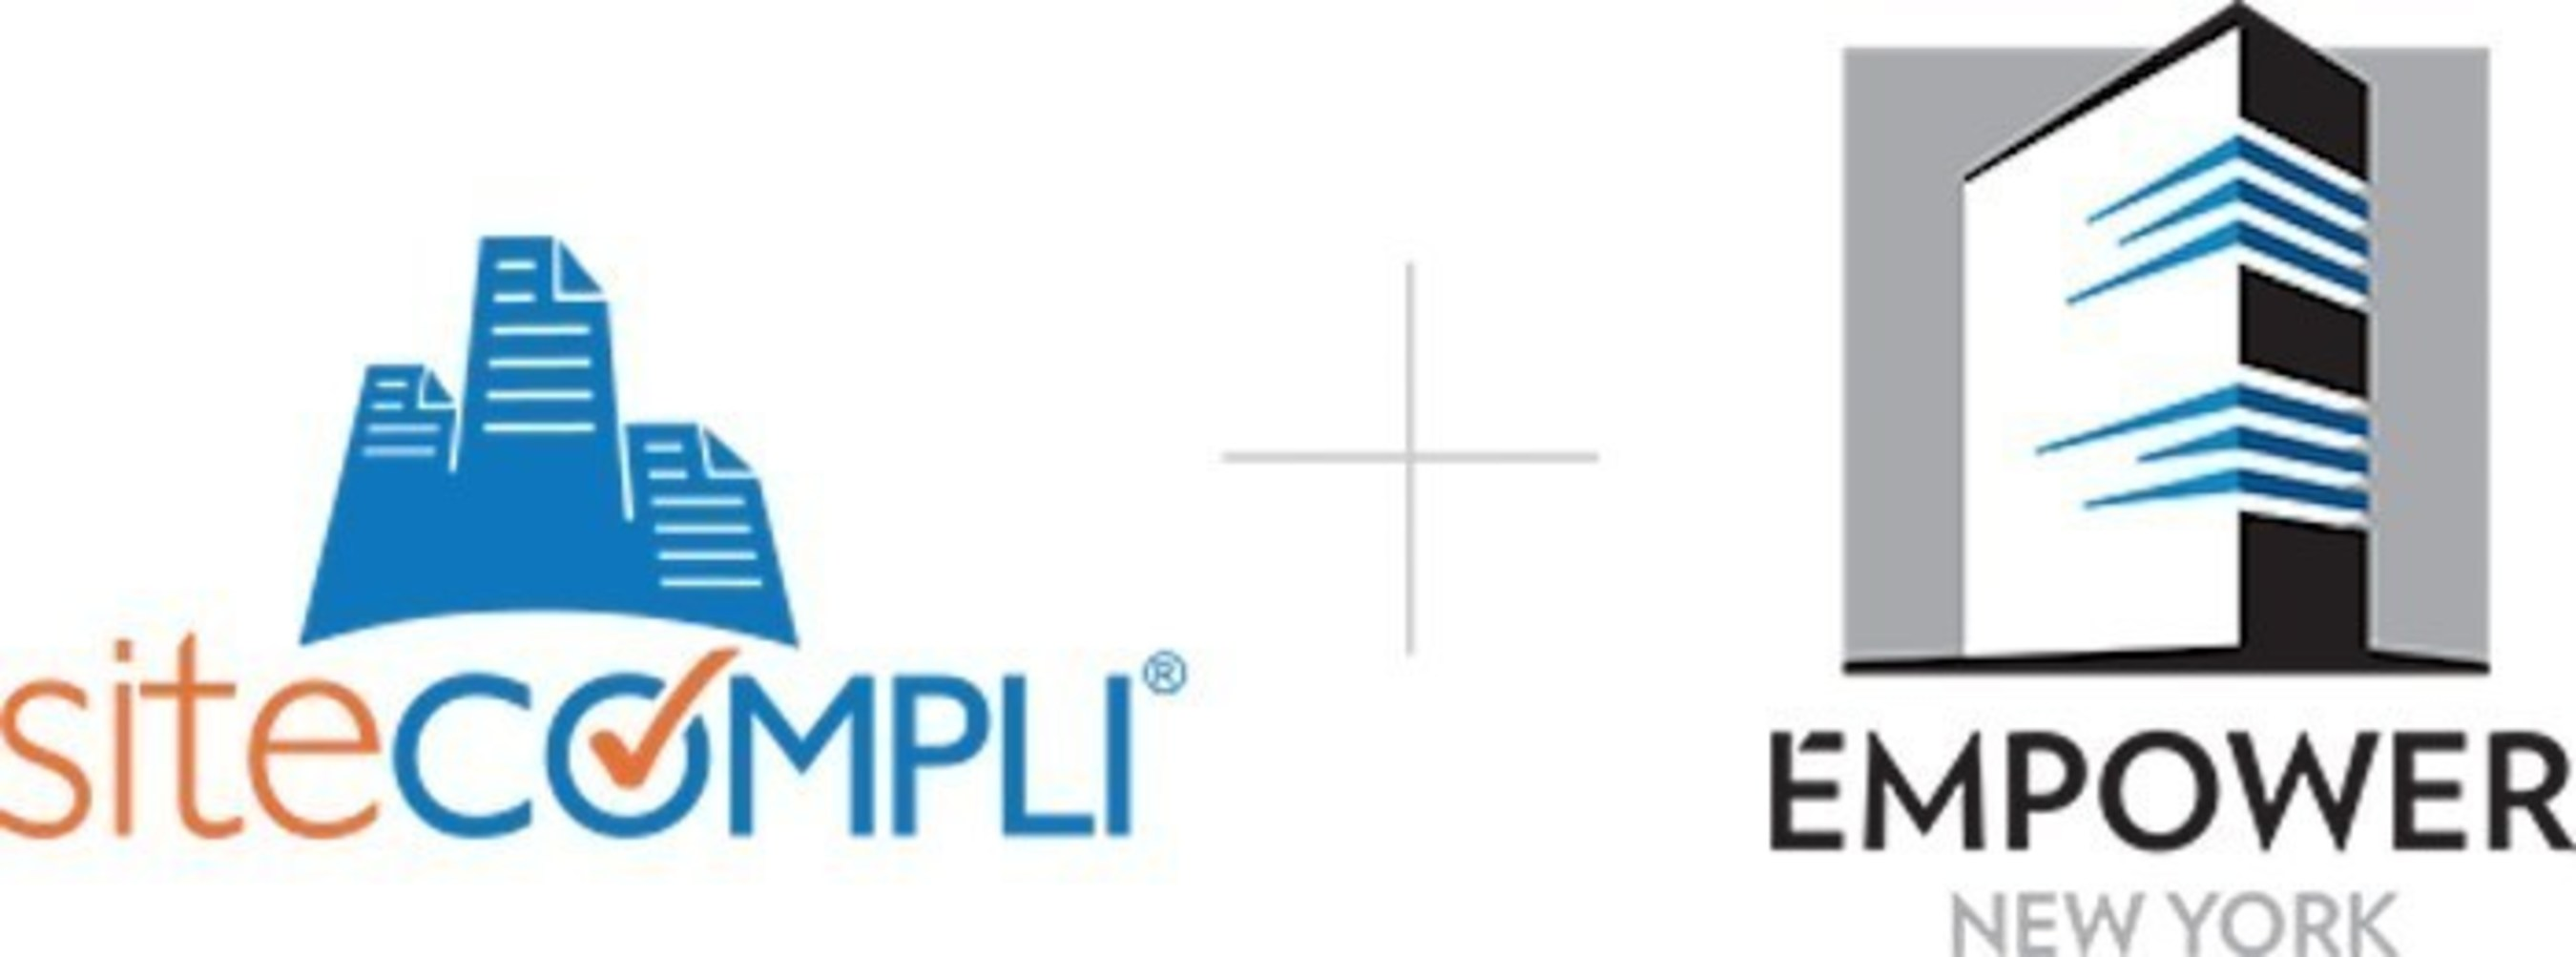 SiteCompli has acquired EMPOWER